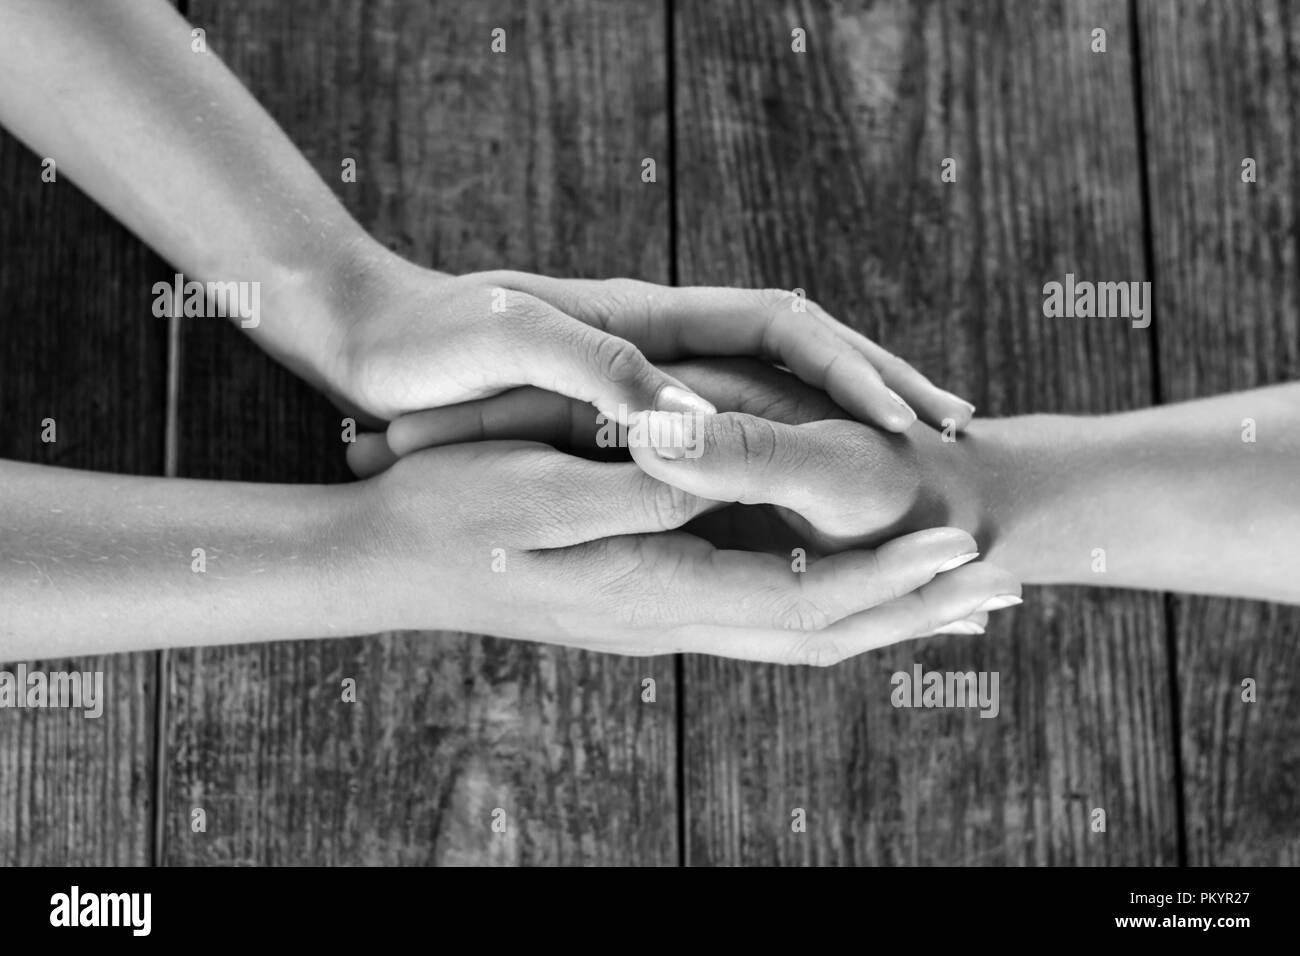 male and female hands holding each other against a wooden background. - Stock Image